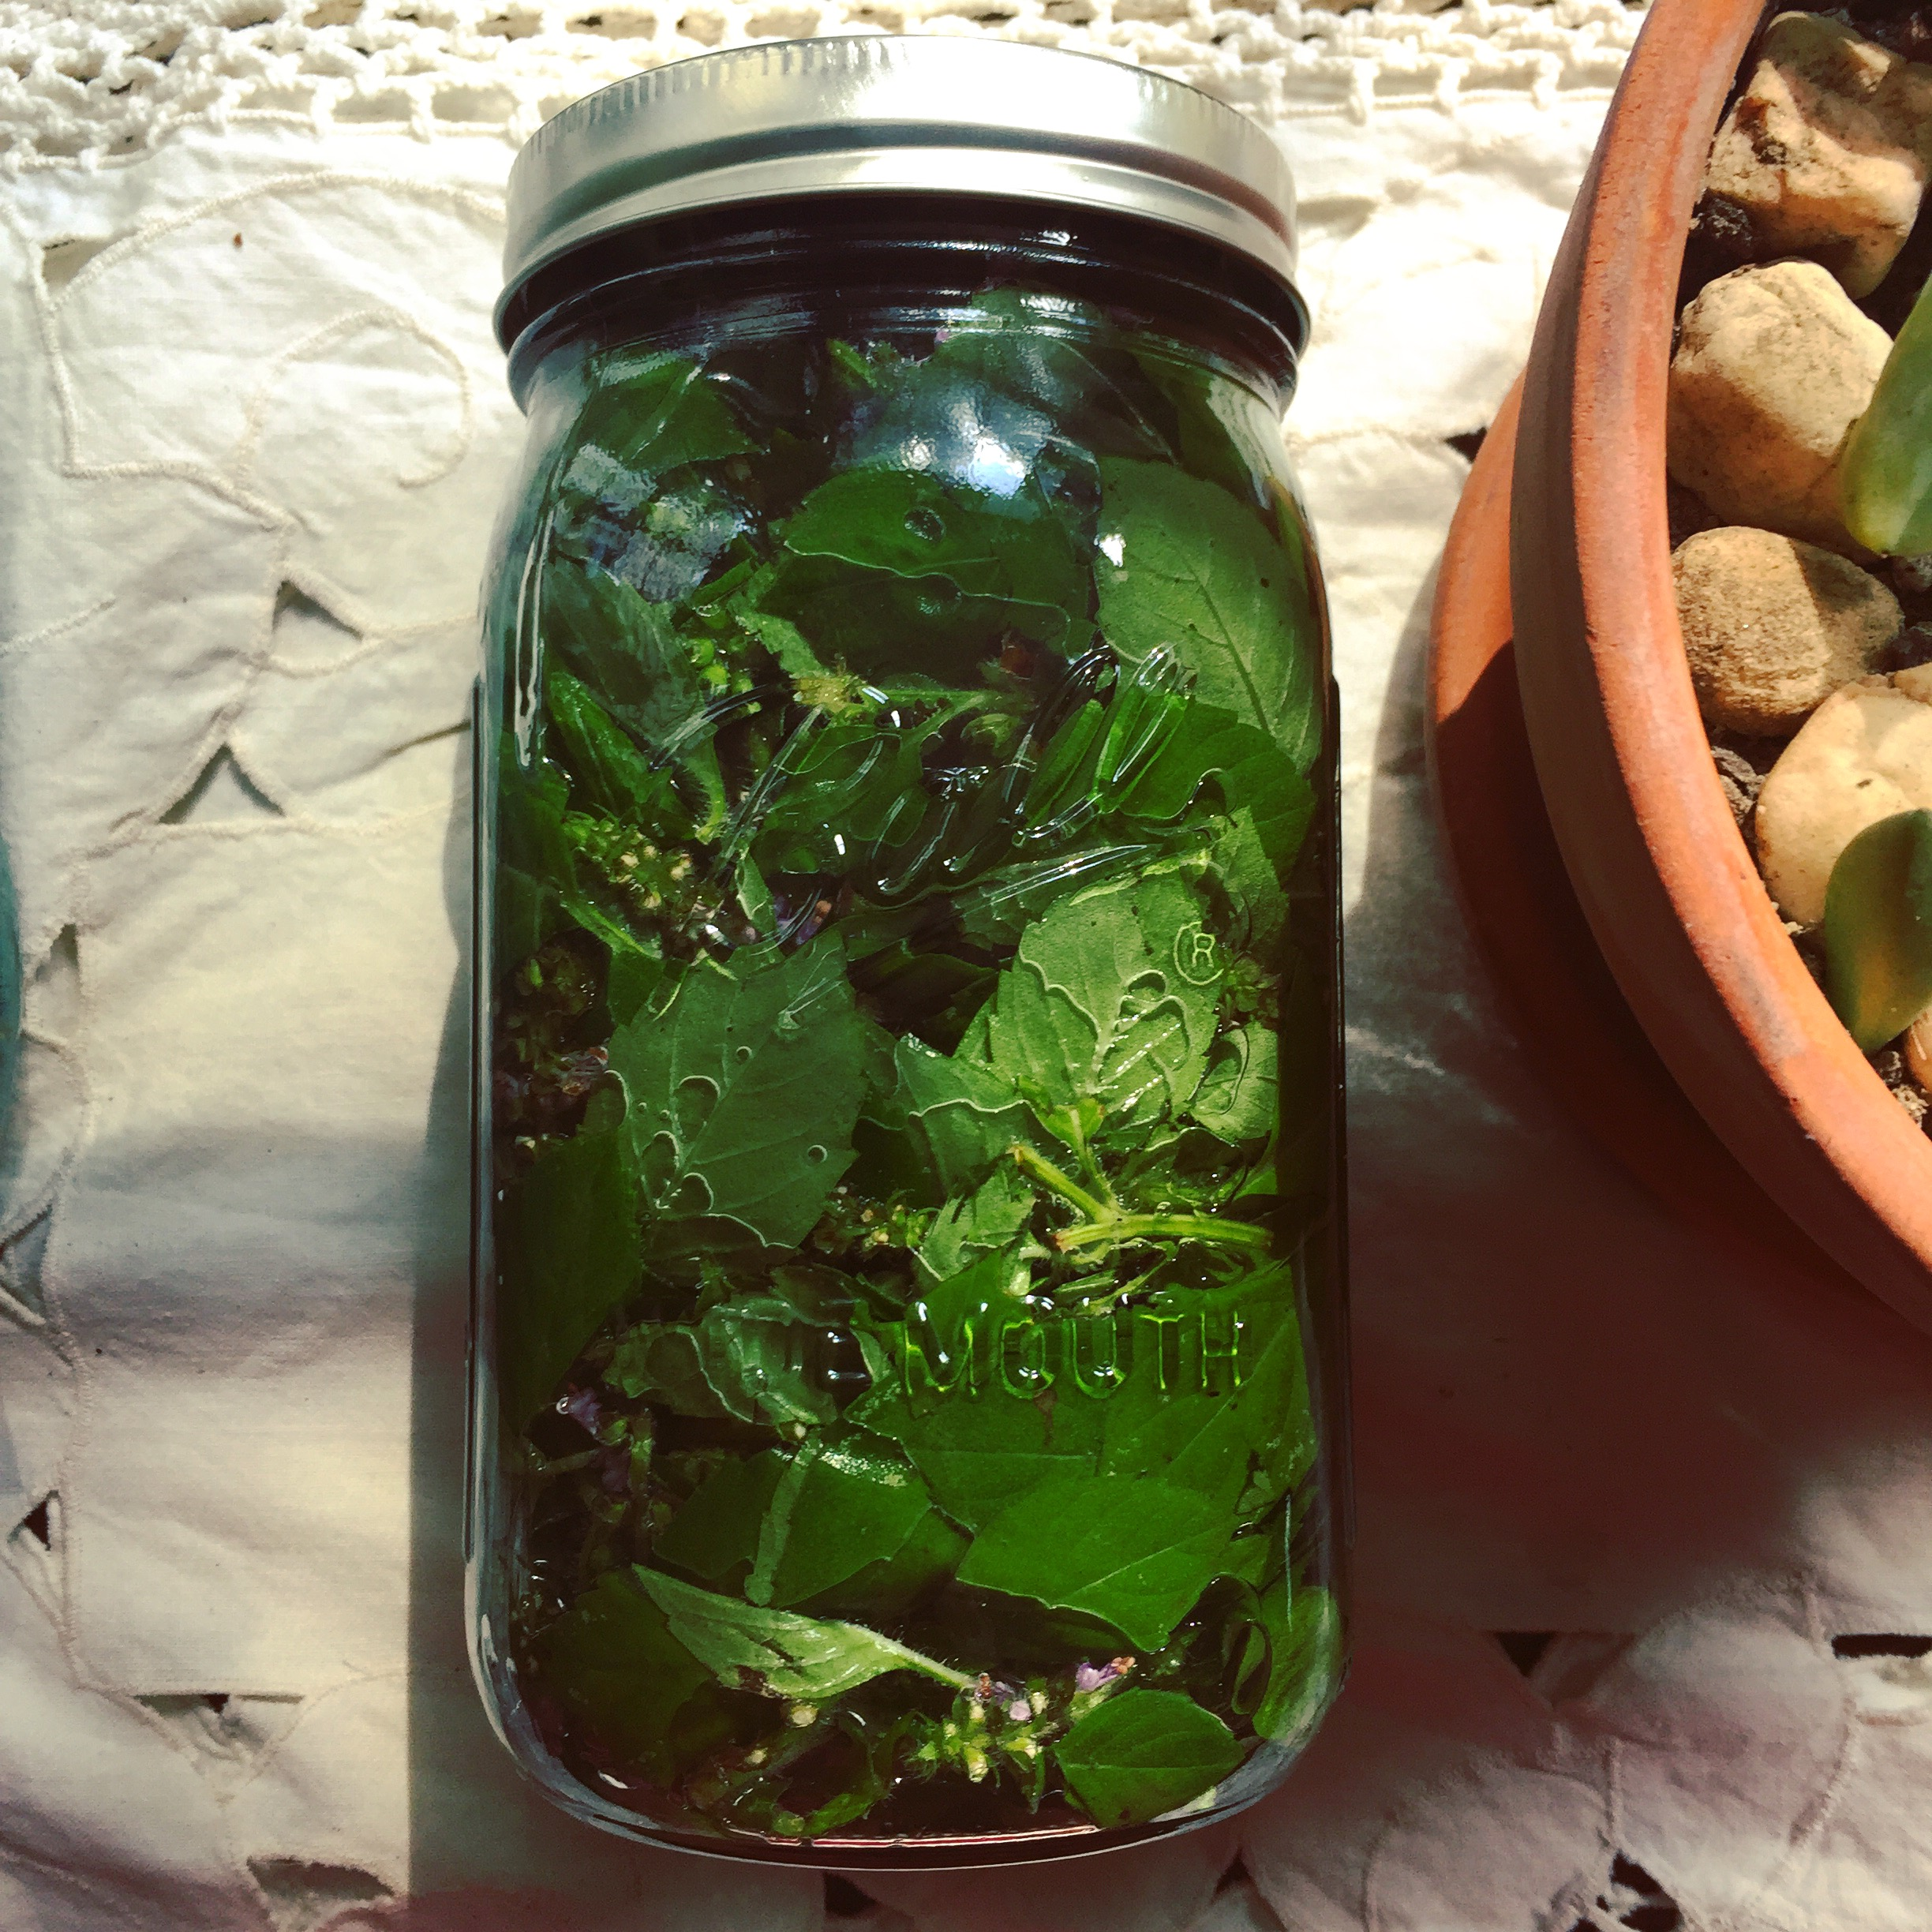 tulsi tincture - the herb that wants you to have your best, clearest thinking under pressure.it supports us with:clearing mental fog, building immunity, and balancing hormones.$10 per 1 oz bottle$20 per 2 oz bottle